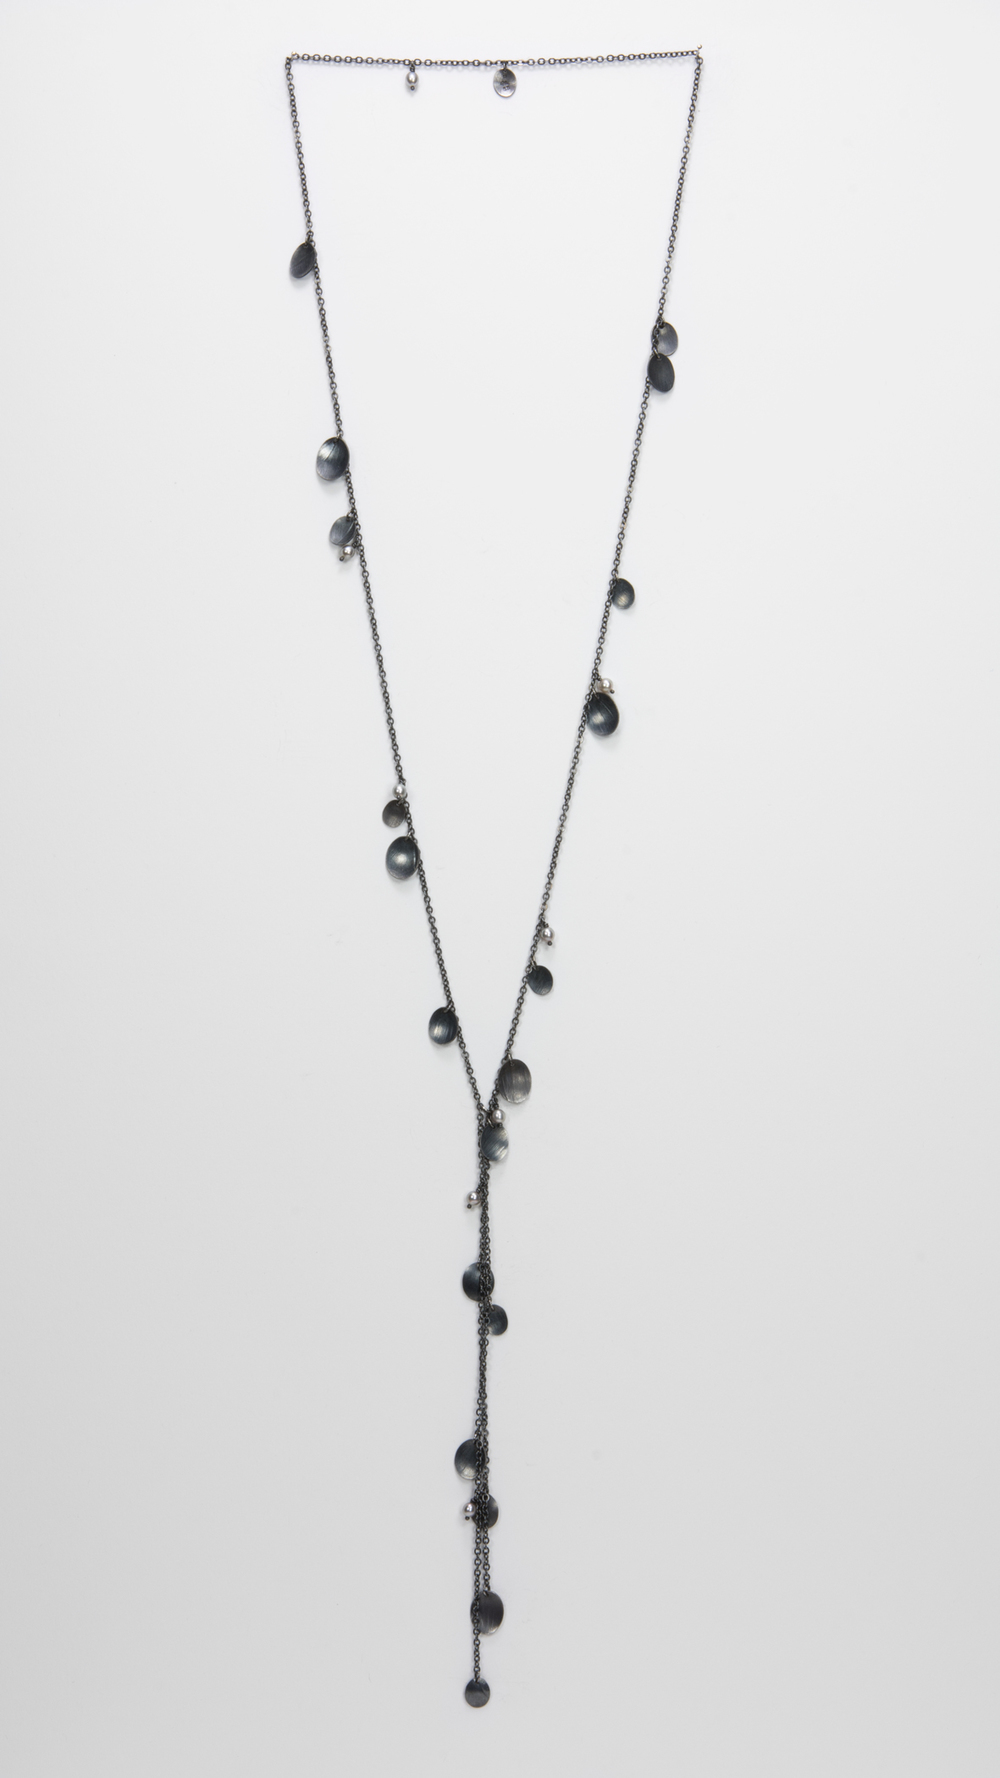 long Y feather necklace - oxidized sterling and pearls - 800.00